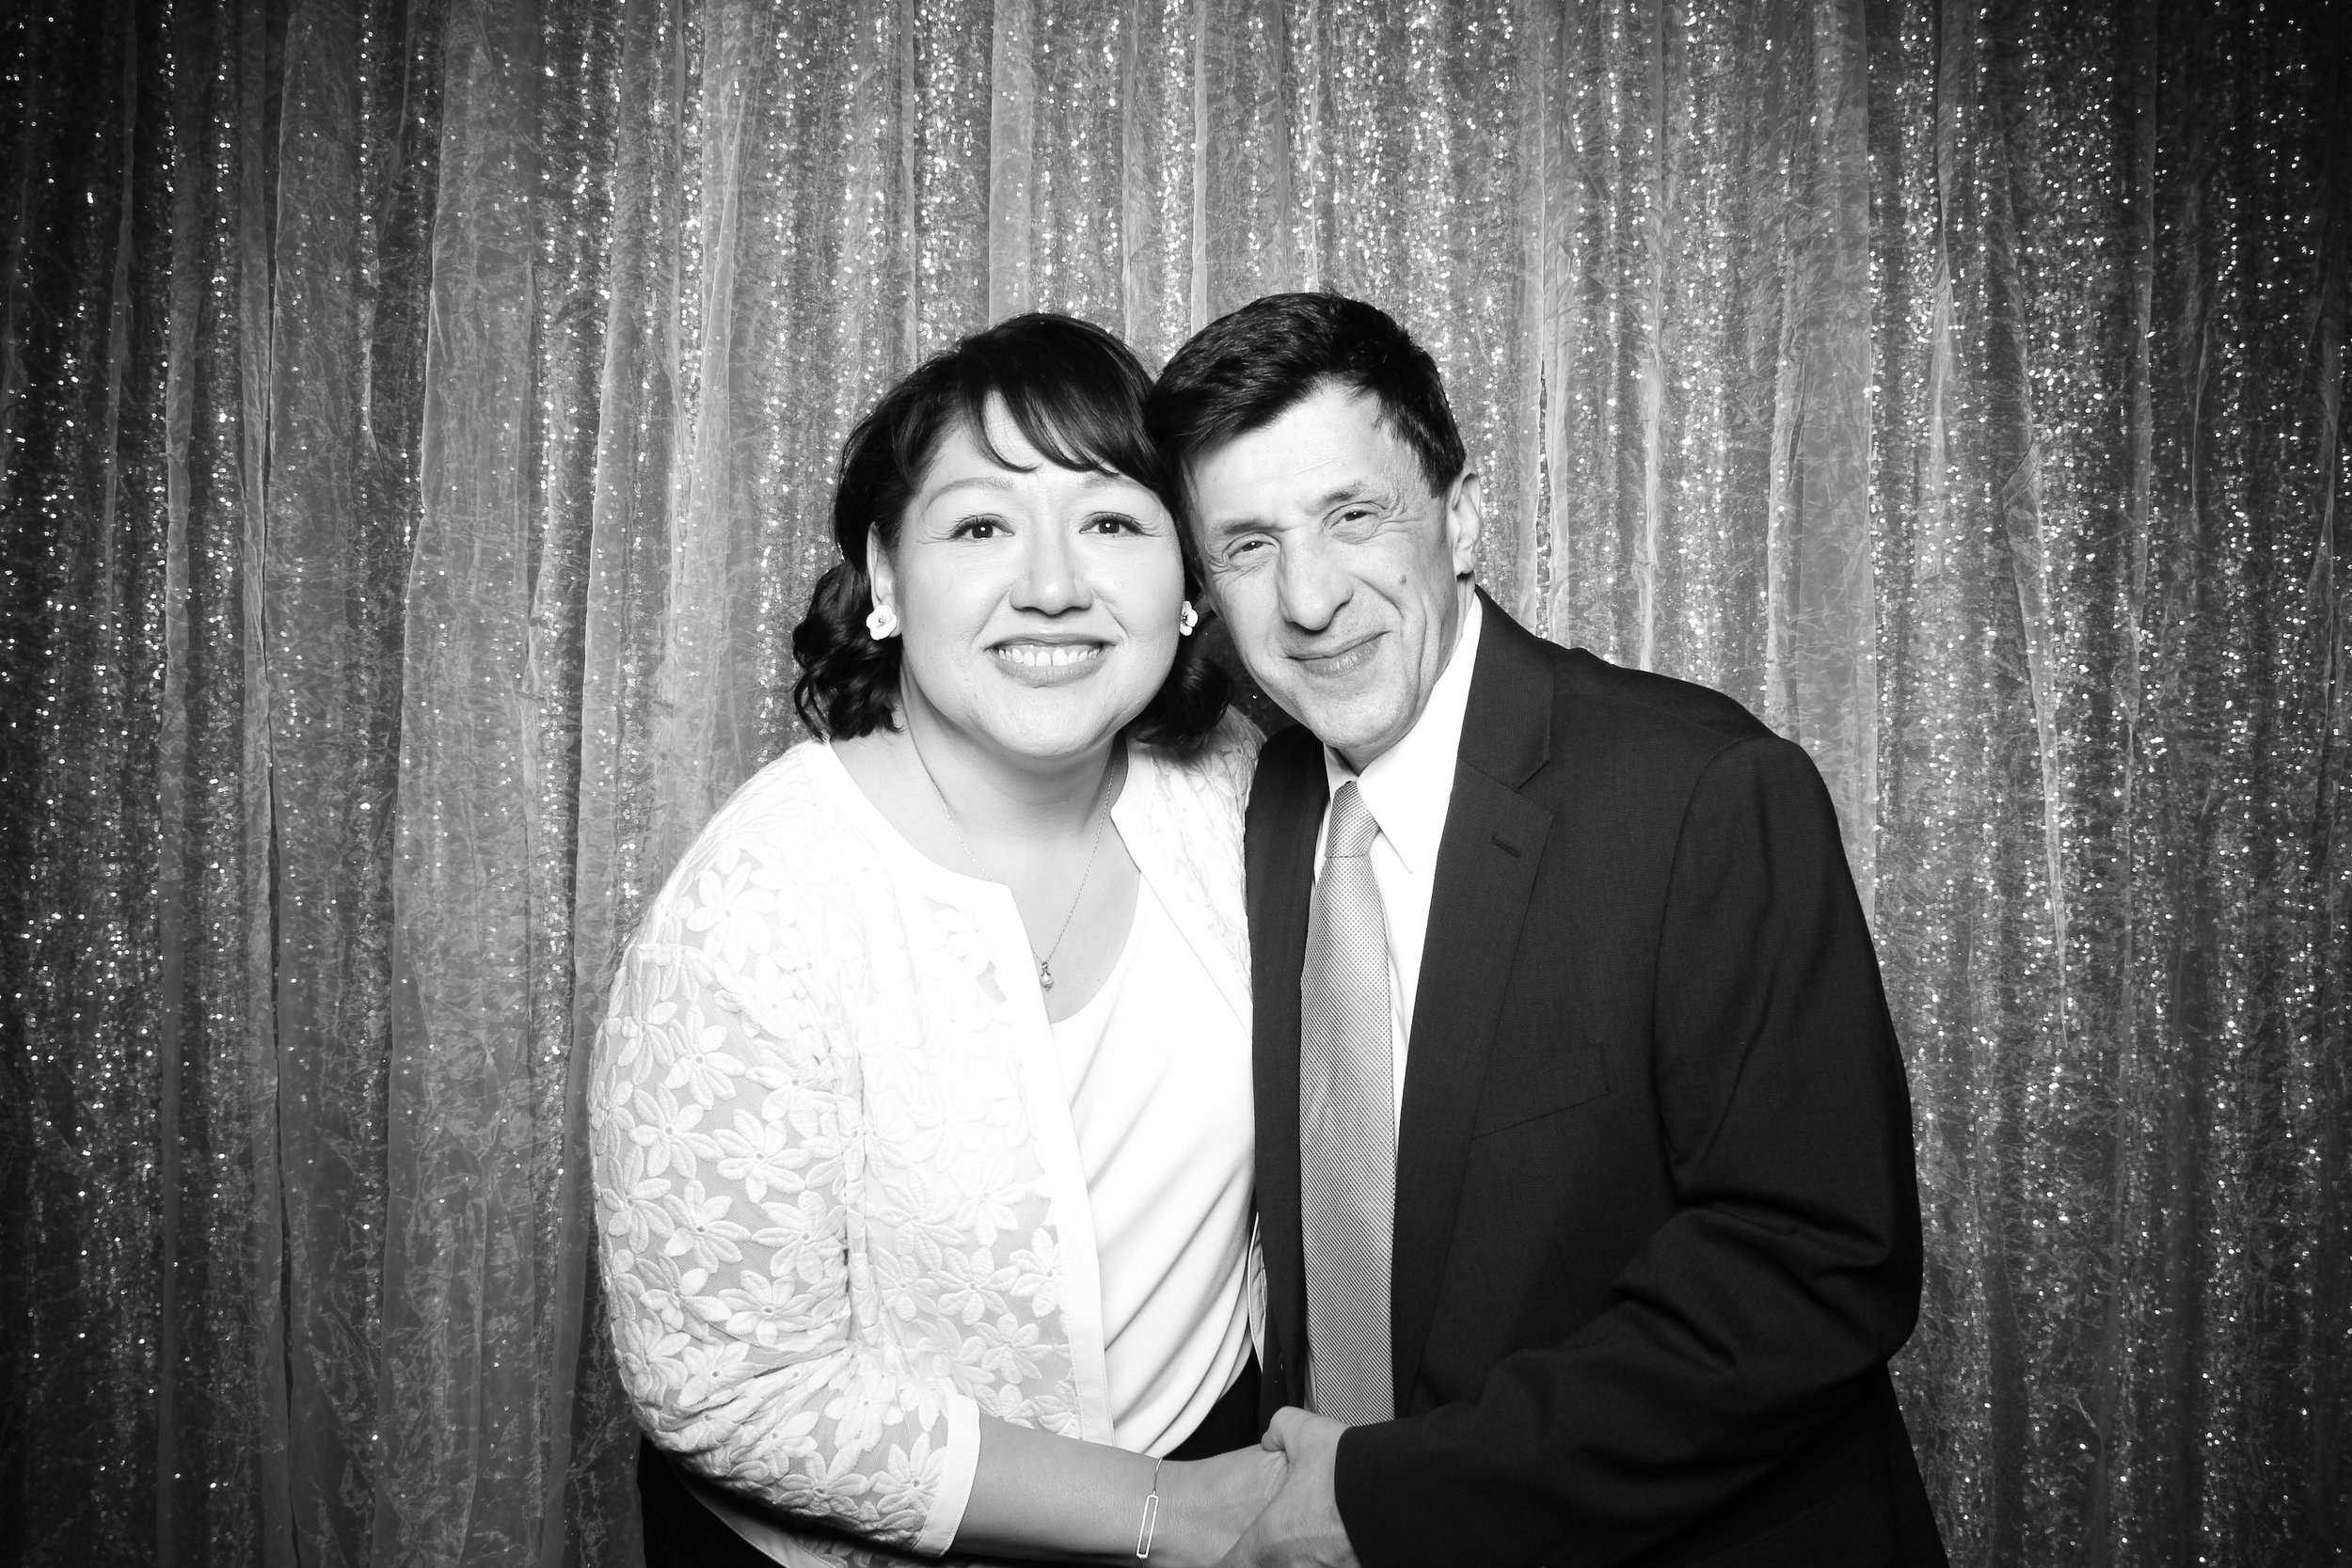 Chicago_Vintage_Wedding_Photobooth_Glen_Club_14.jpg